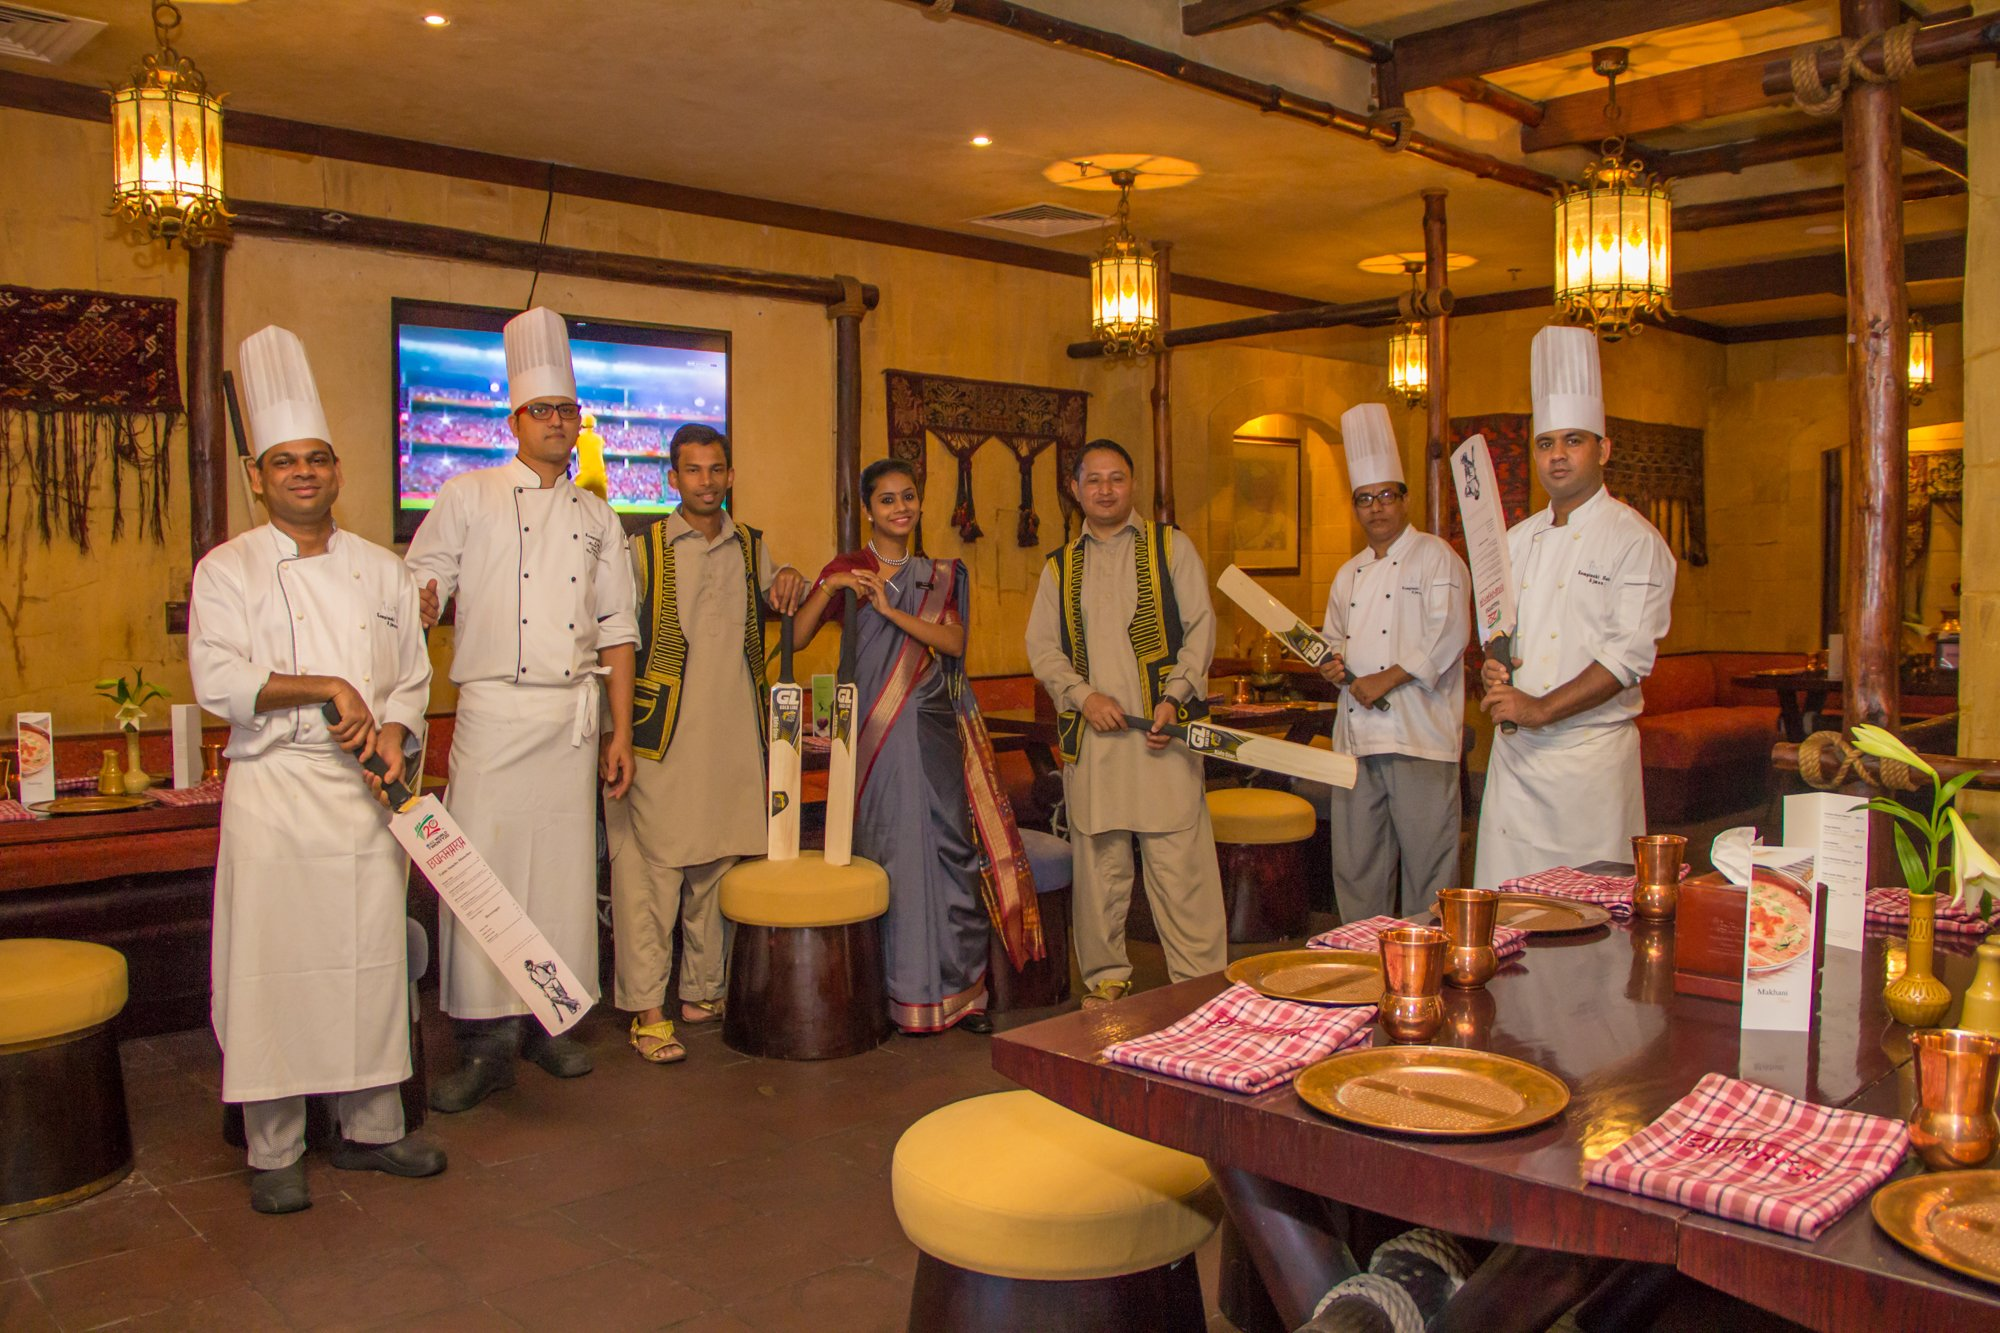 Bukhara At Kempinski Hotel Ajman Shows Live IPL Cricket